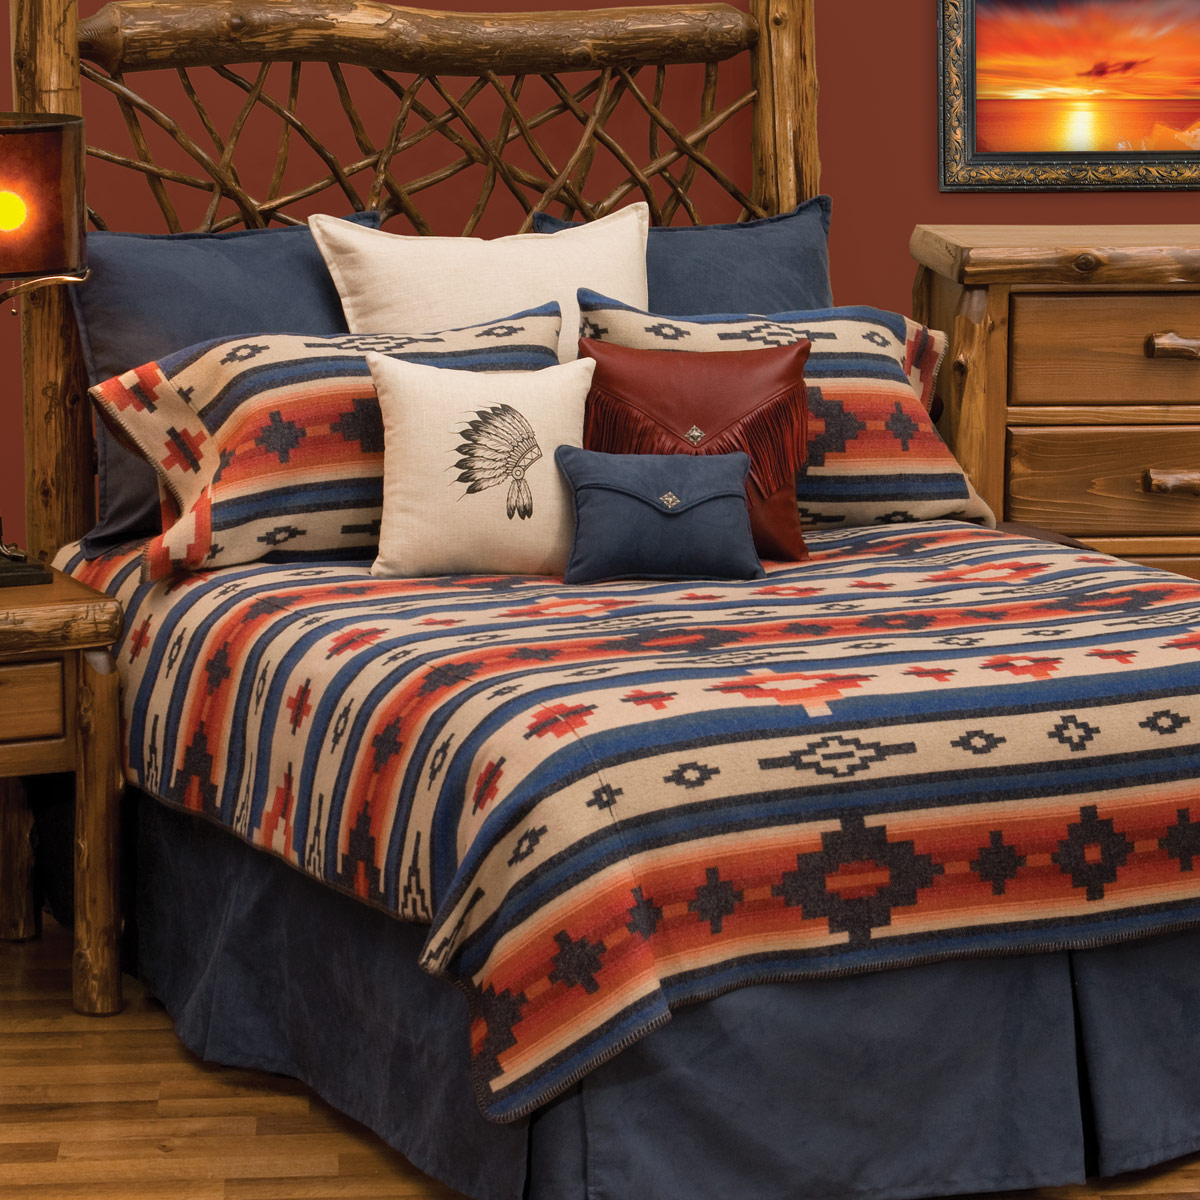 Black Forest Decor Redrock canyon bedspread - cal king